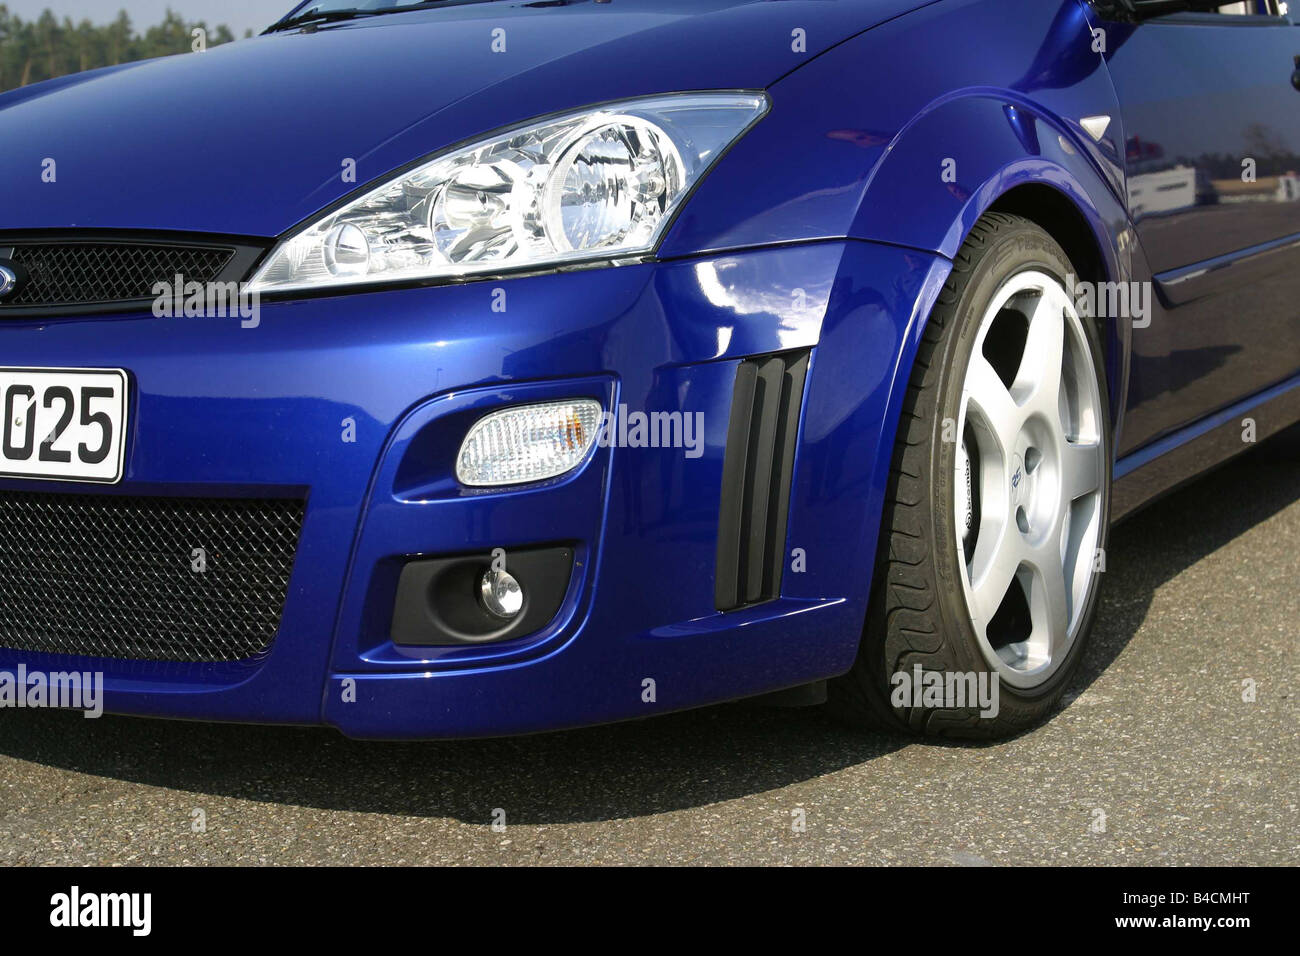 Car ford focus rs limousine model year 2002 blue lower